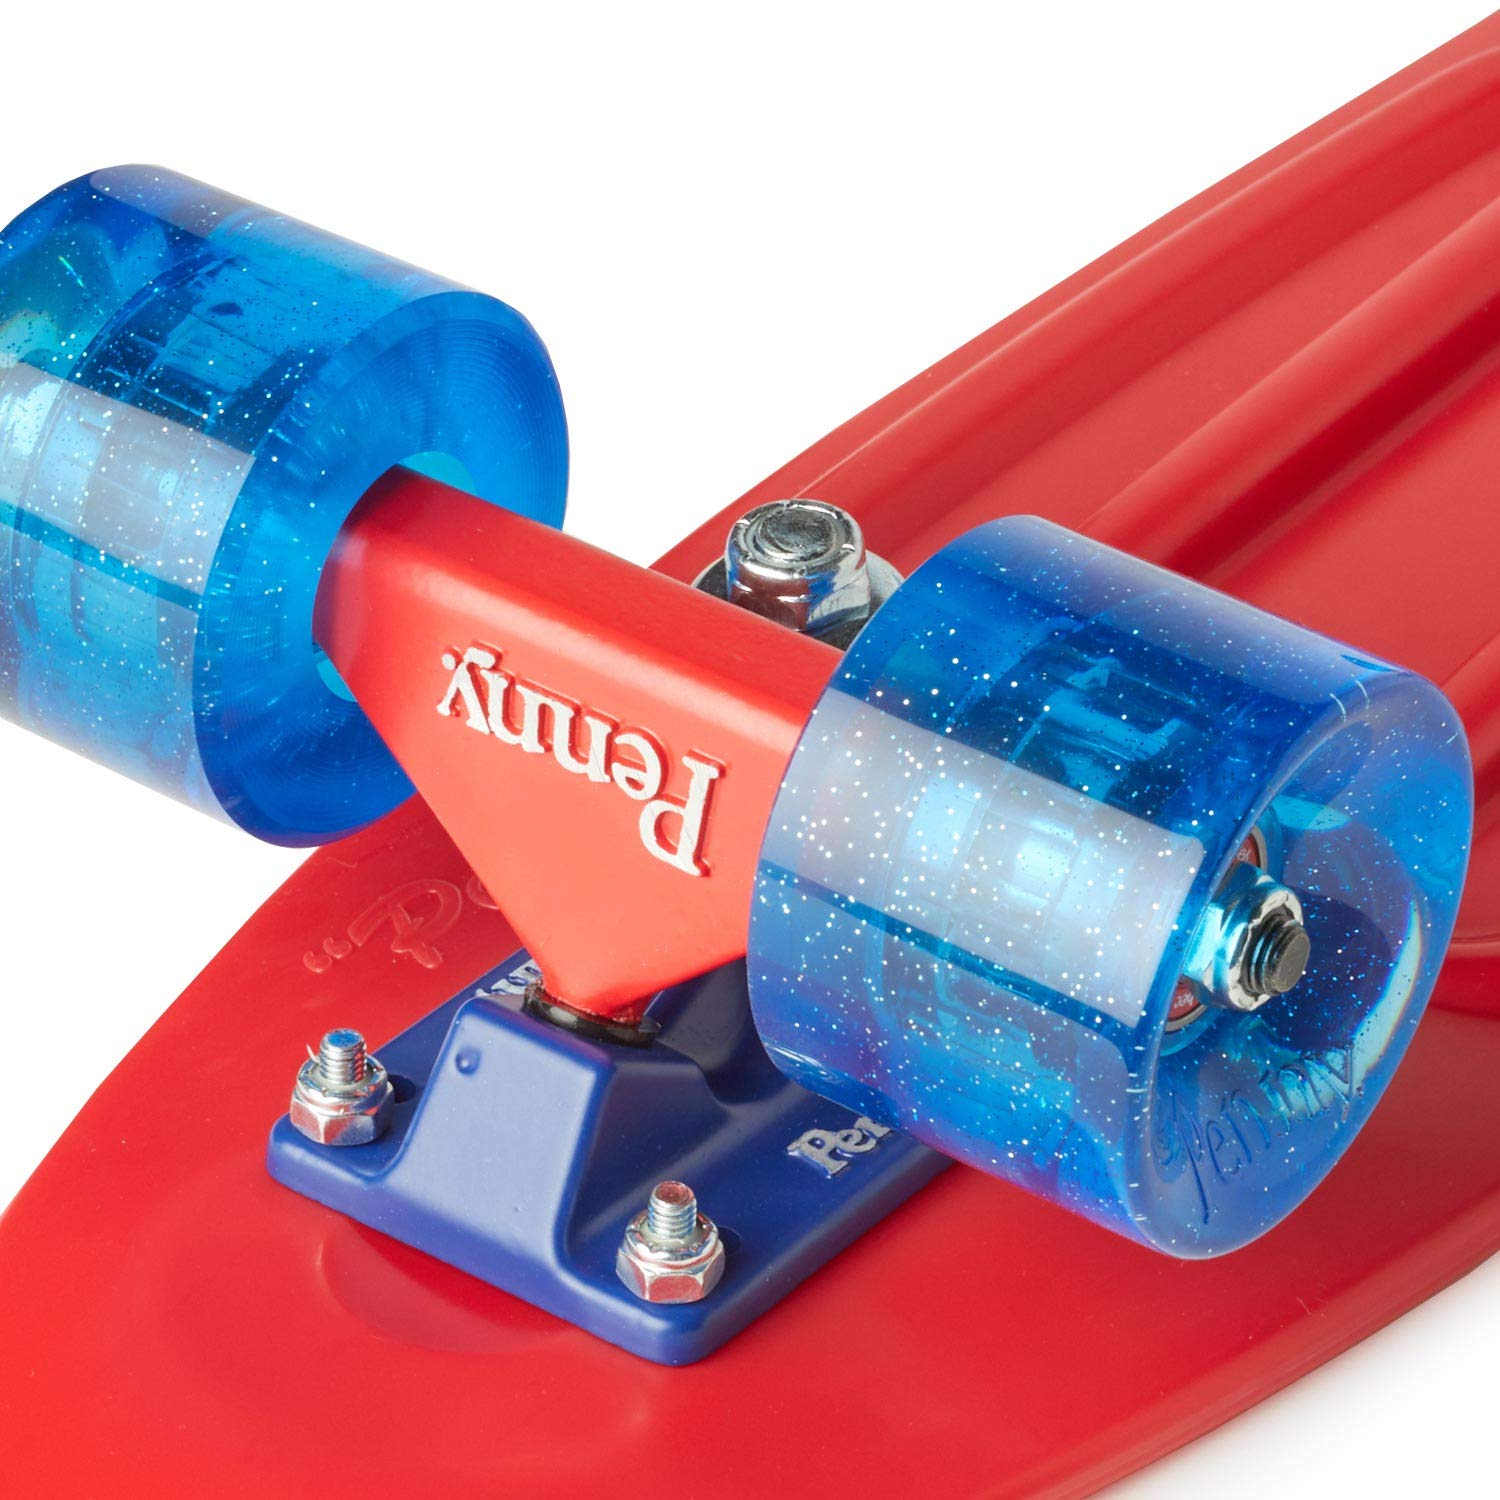 Penny Australia Complete Skateboard (Red Comet, 22'') by Penny Australia (Image #4)